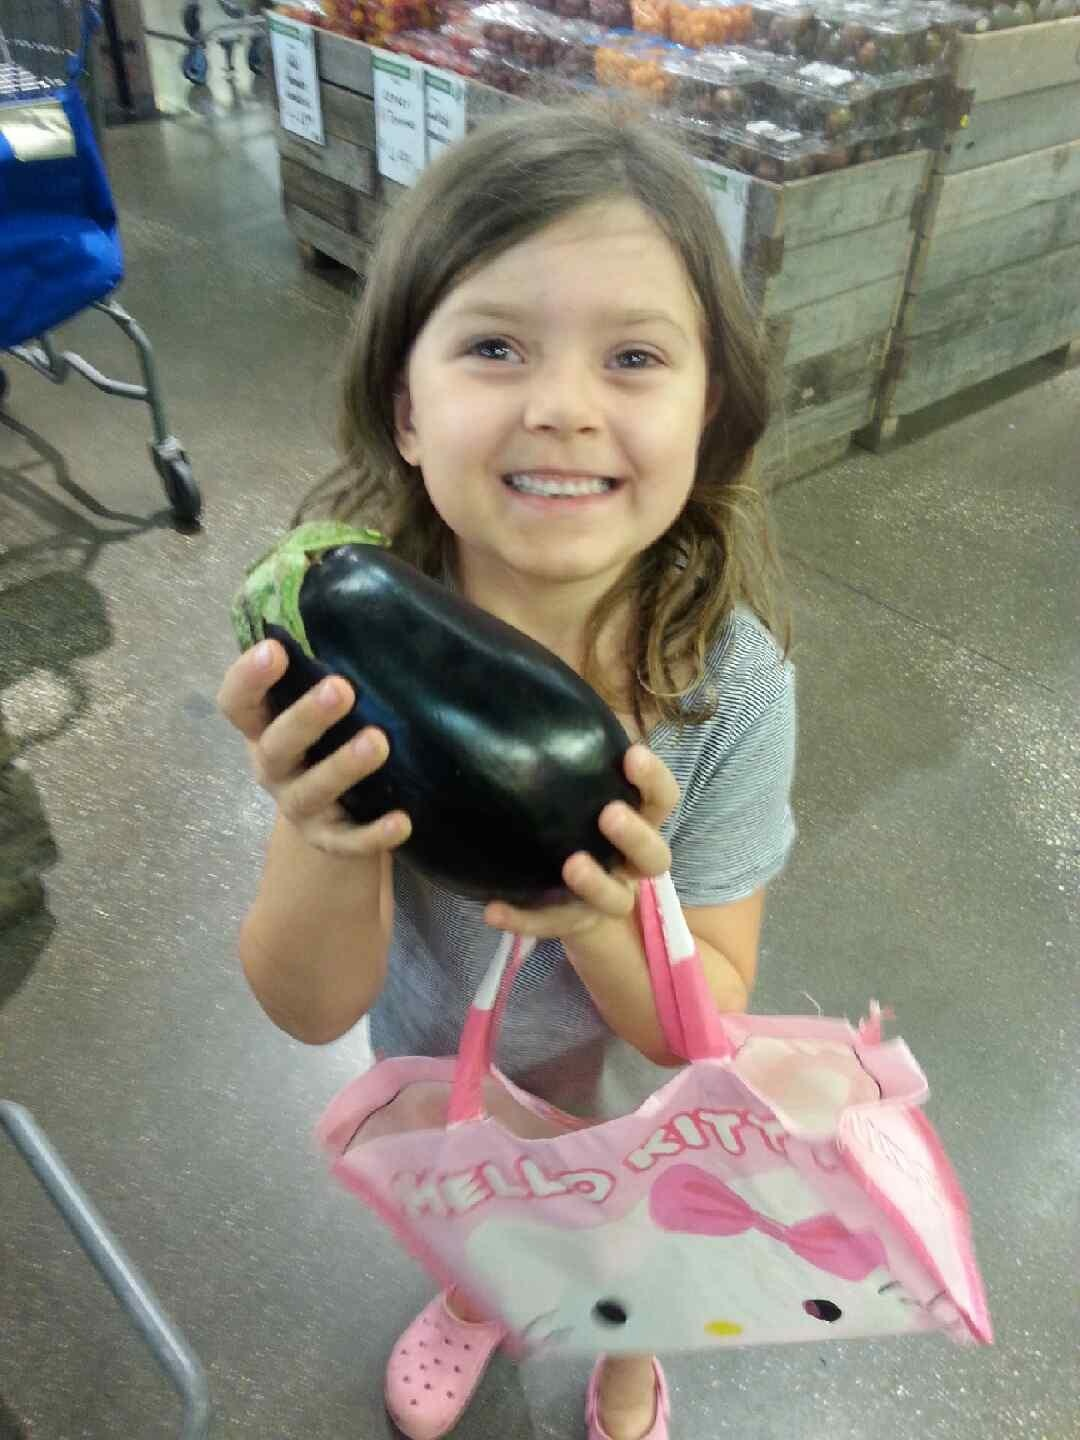 Zoey holding an eggplant